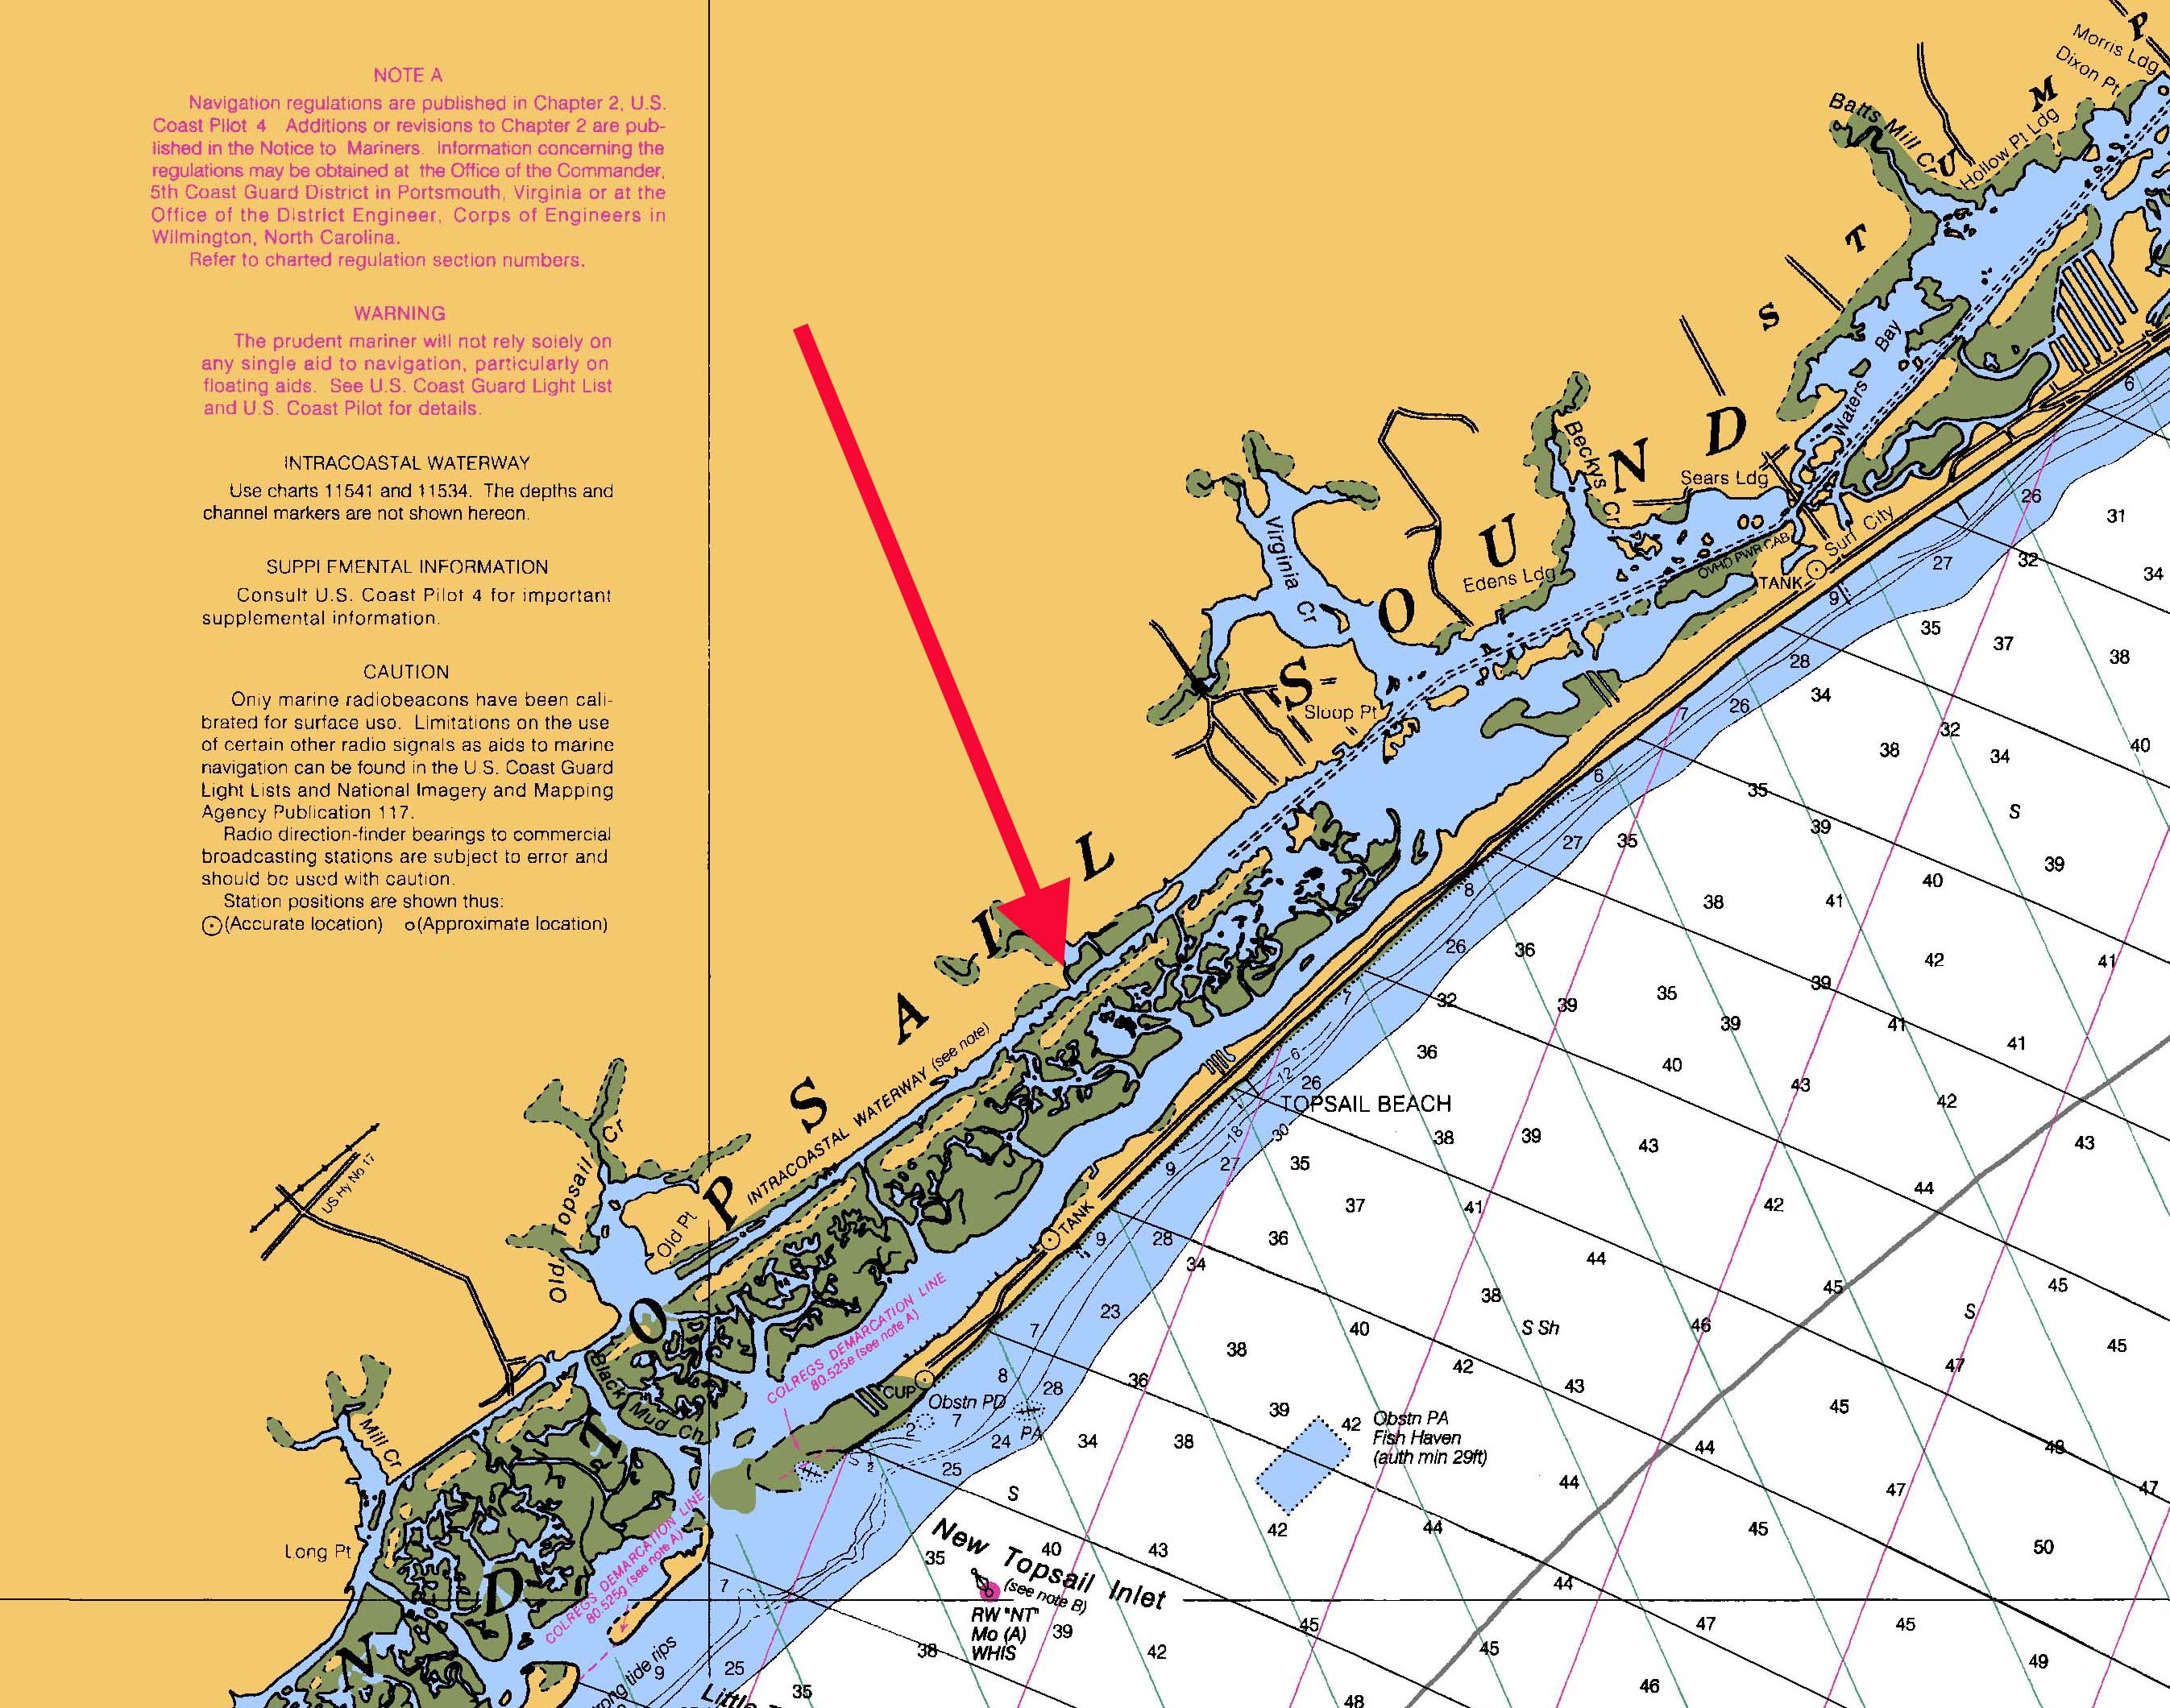 Topsail tide chart gallery free any chart examples topsail tide chart gallery free any chart examples nc tide chart images free any chart examples nvjuhfo Choice Image